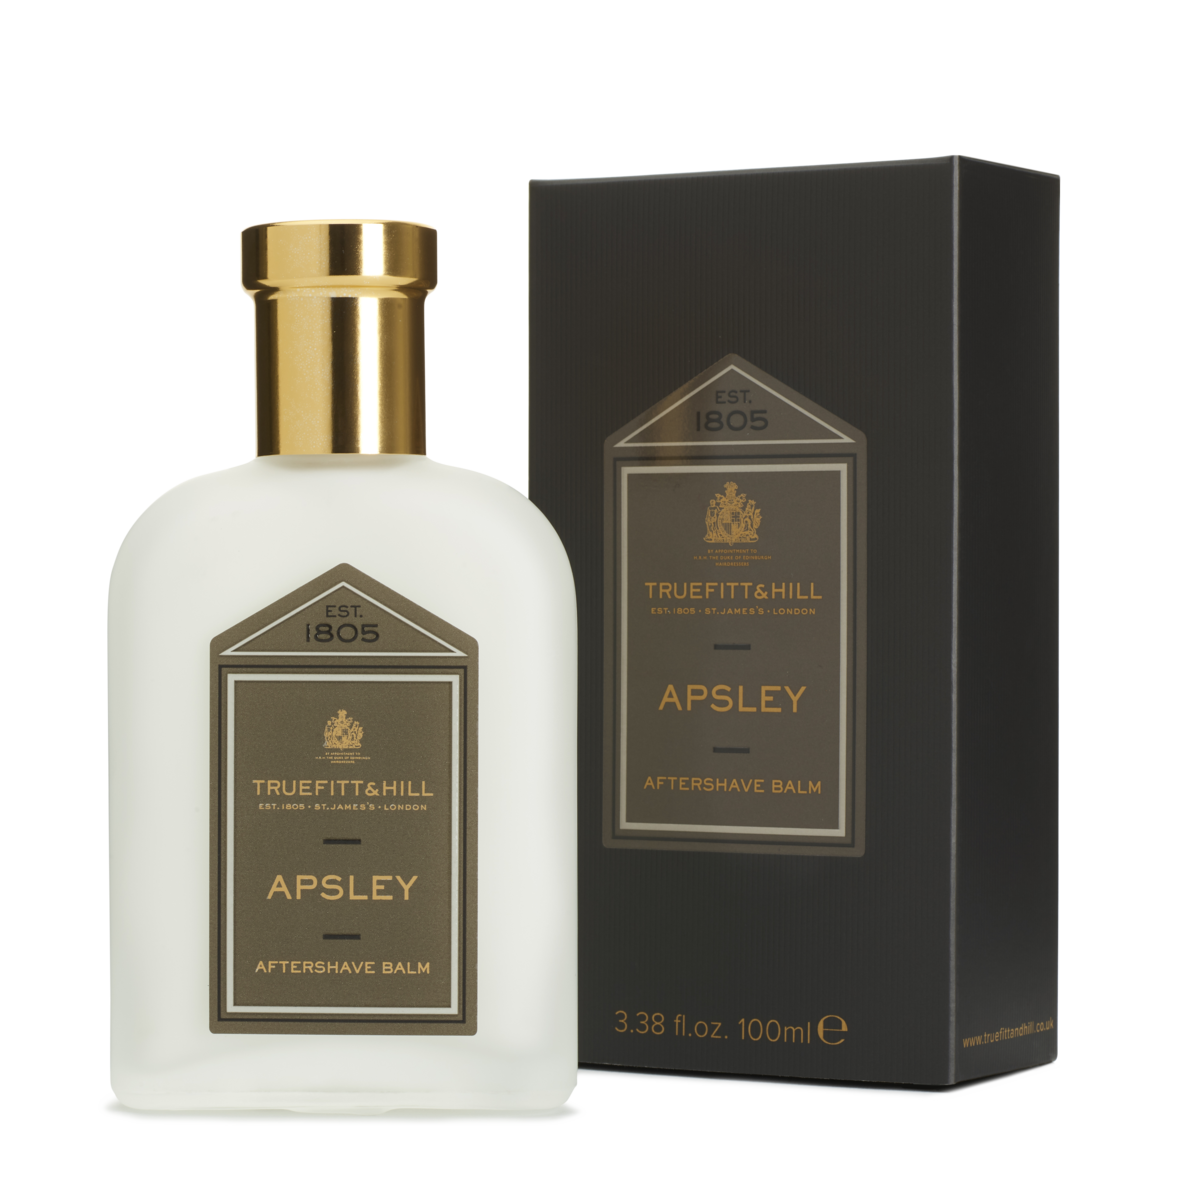 Apsley Aftershave Balm